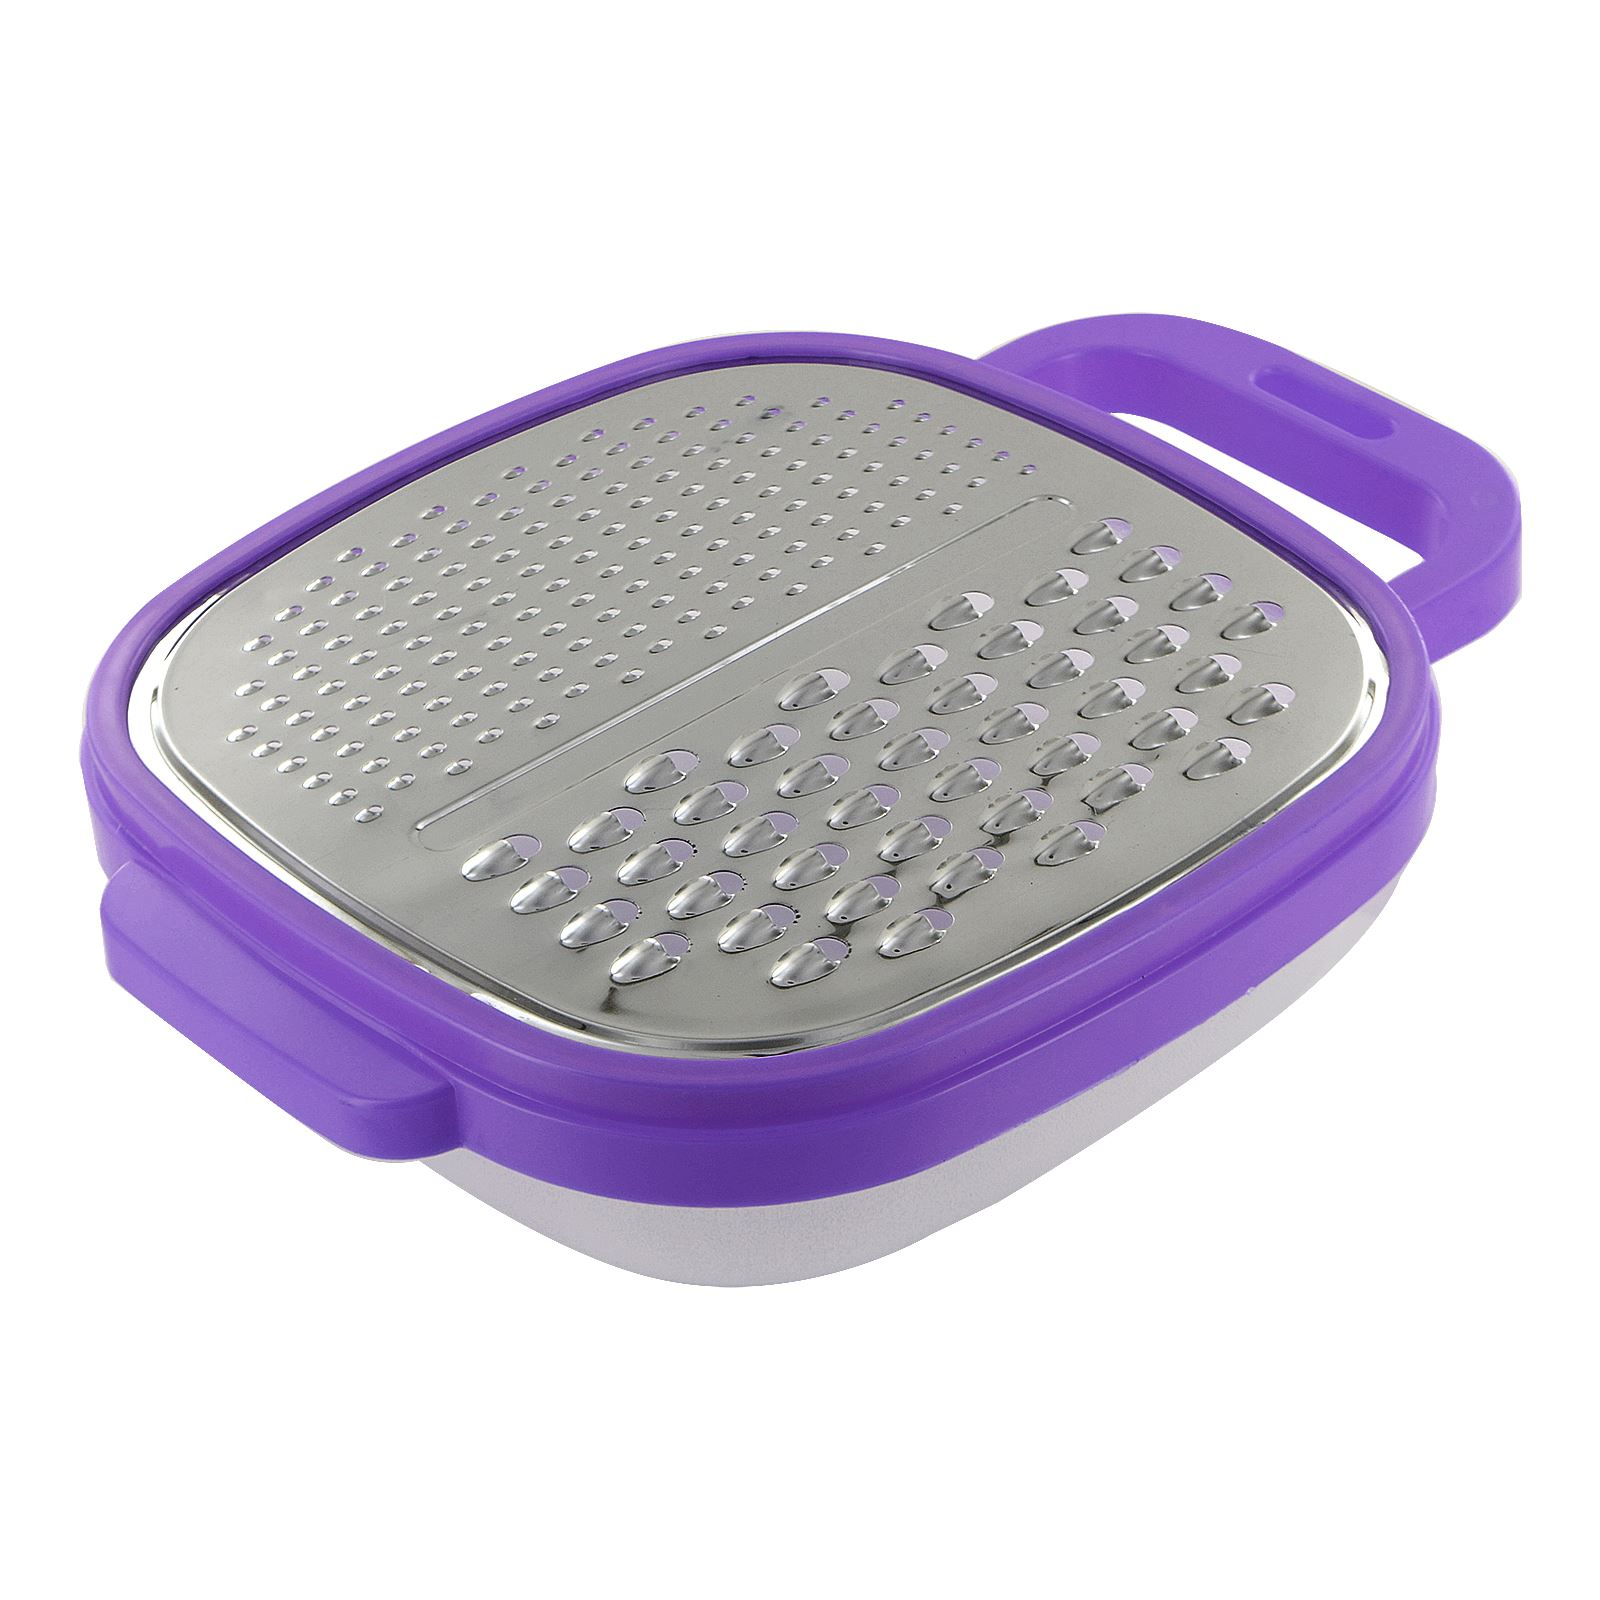 New Kitchen Cheese Grater Zester Hand Held Food Slicer Container Vegetable Fruit